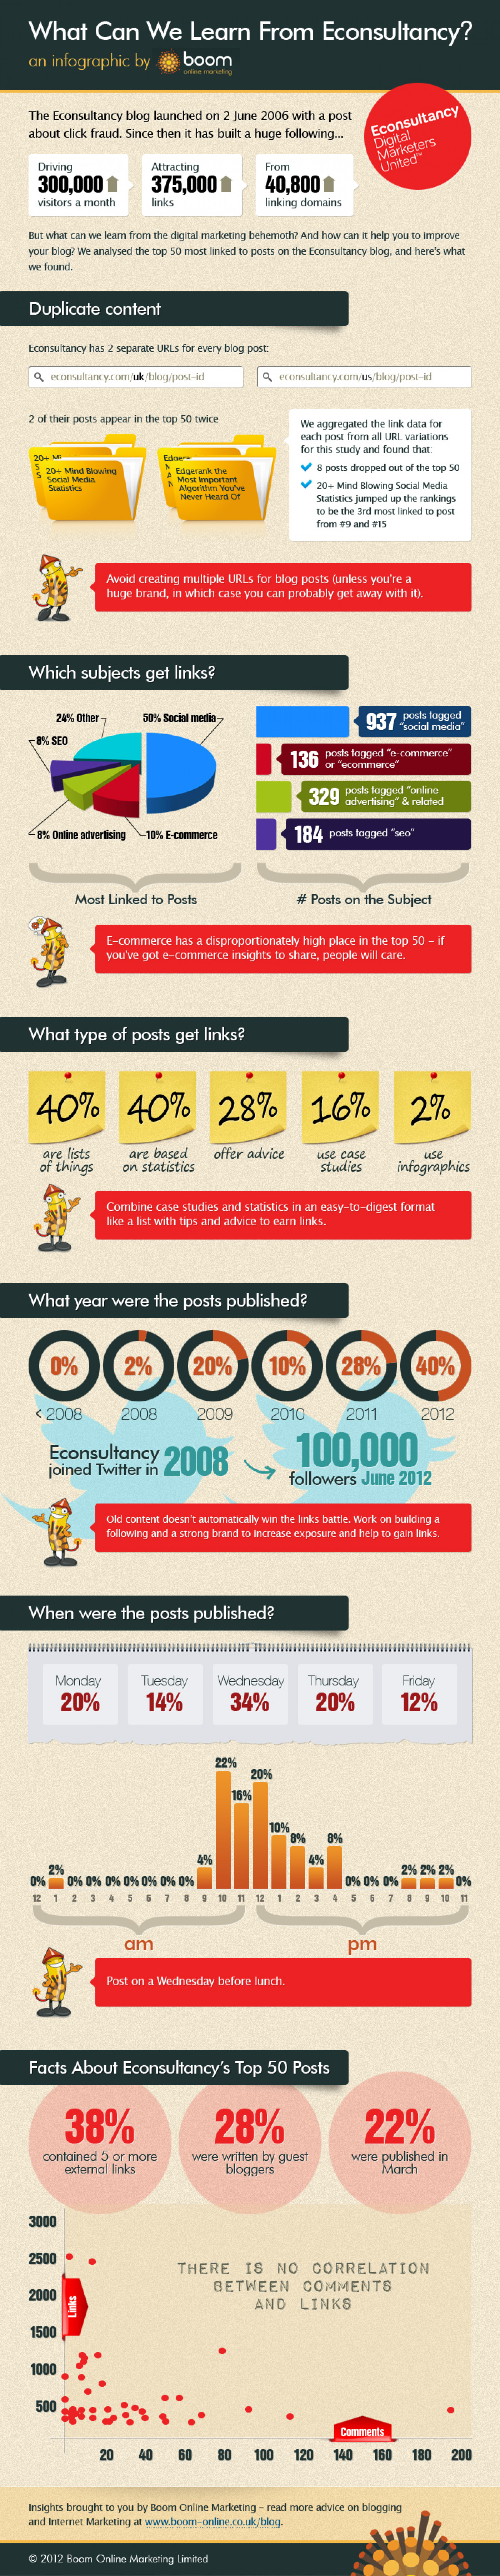 What can we learn from Econsultancy? Infographic